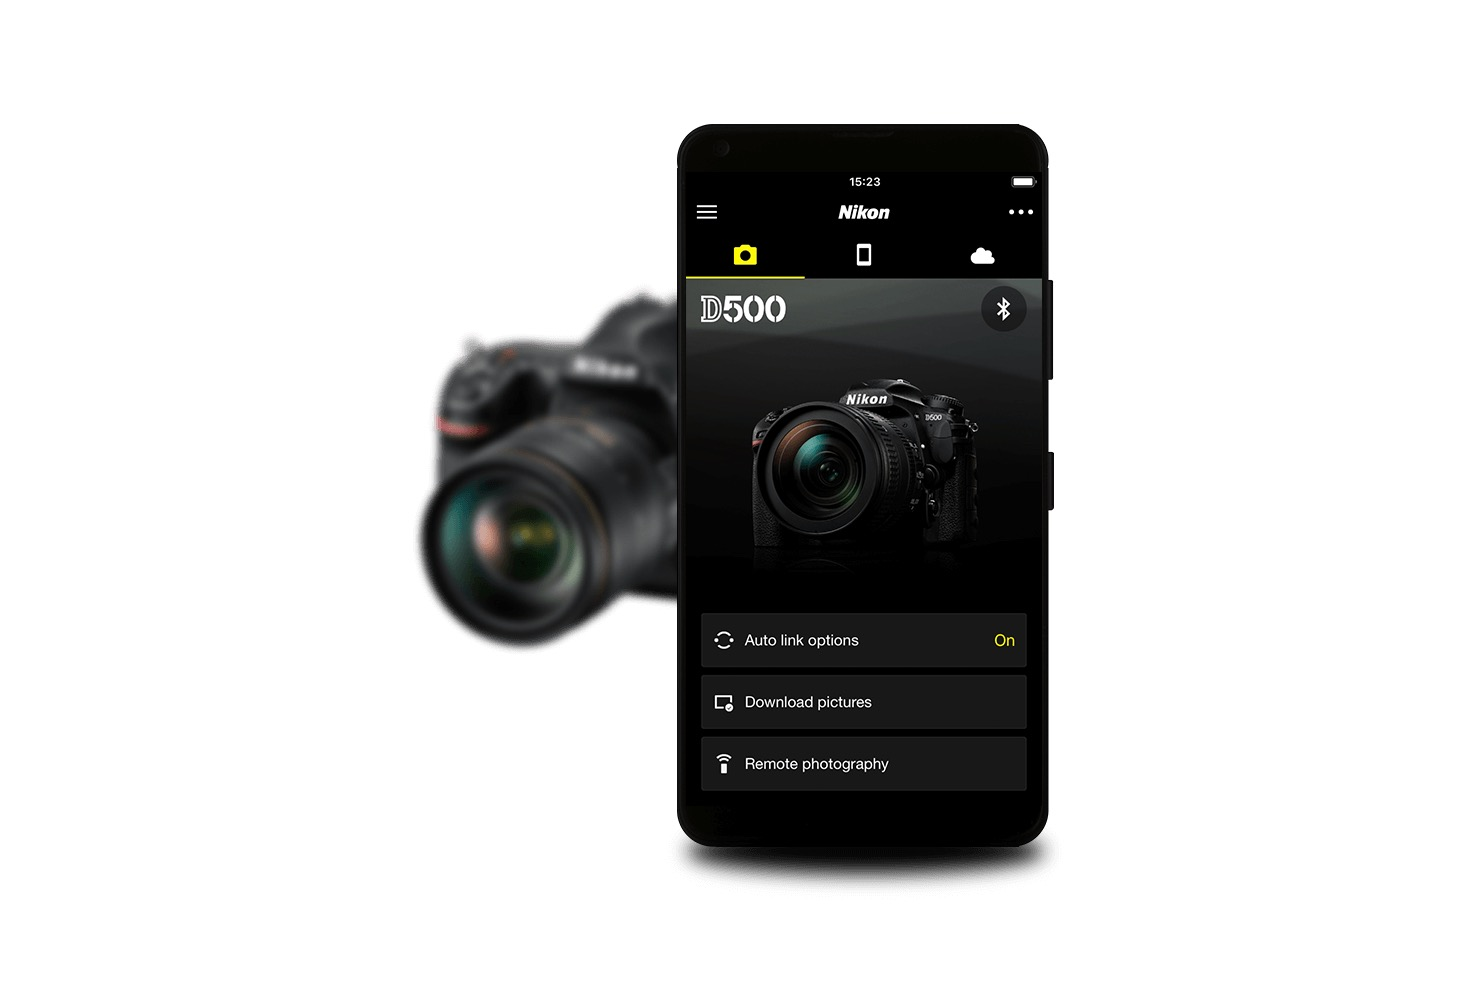 Nikon SnapBridge 2 6 update brings Raw image transfer